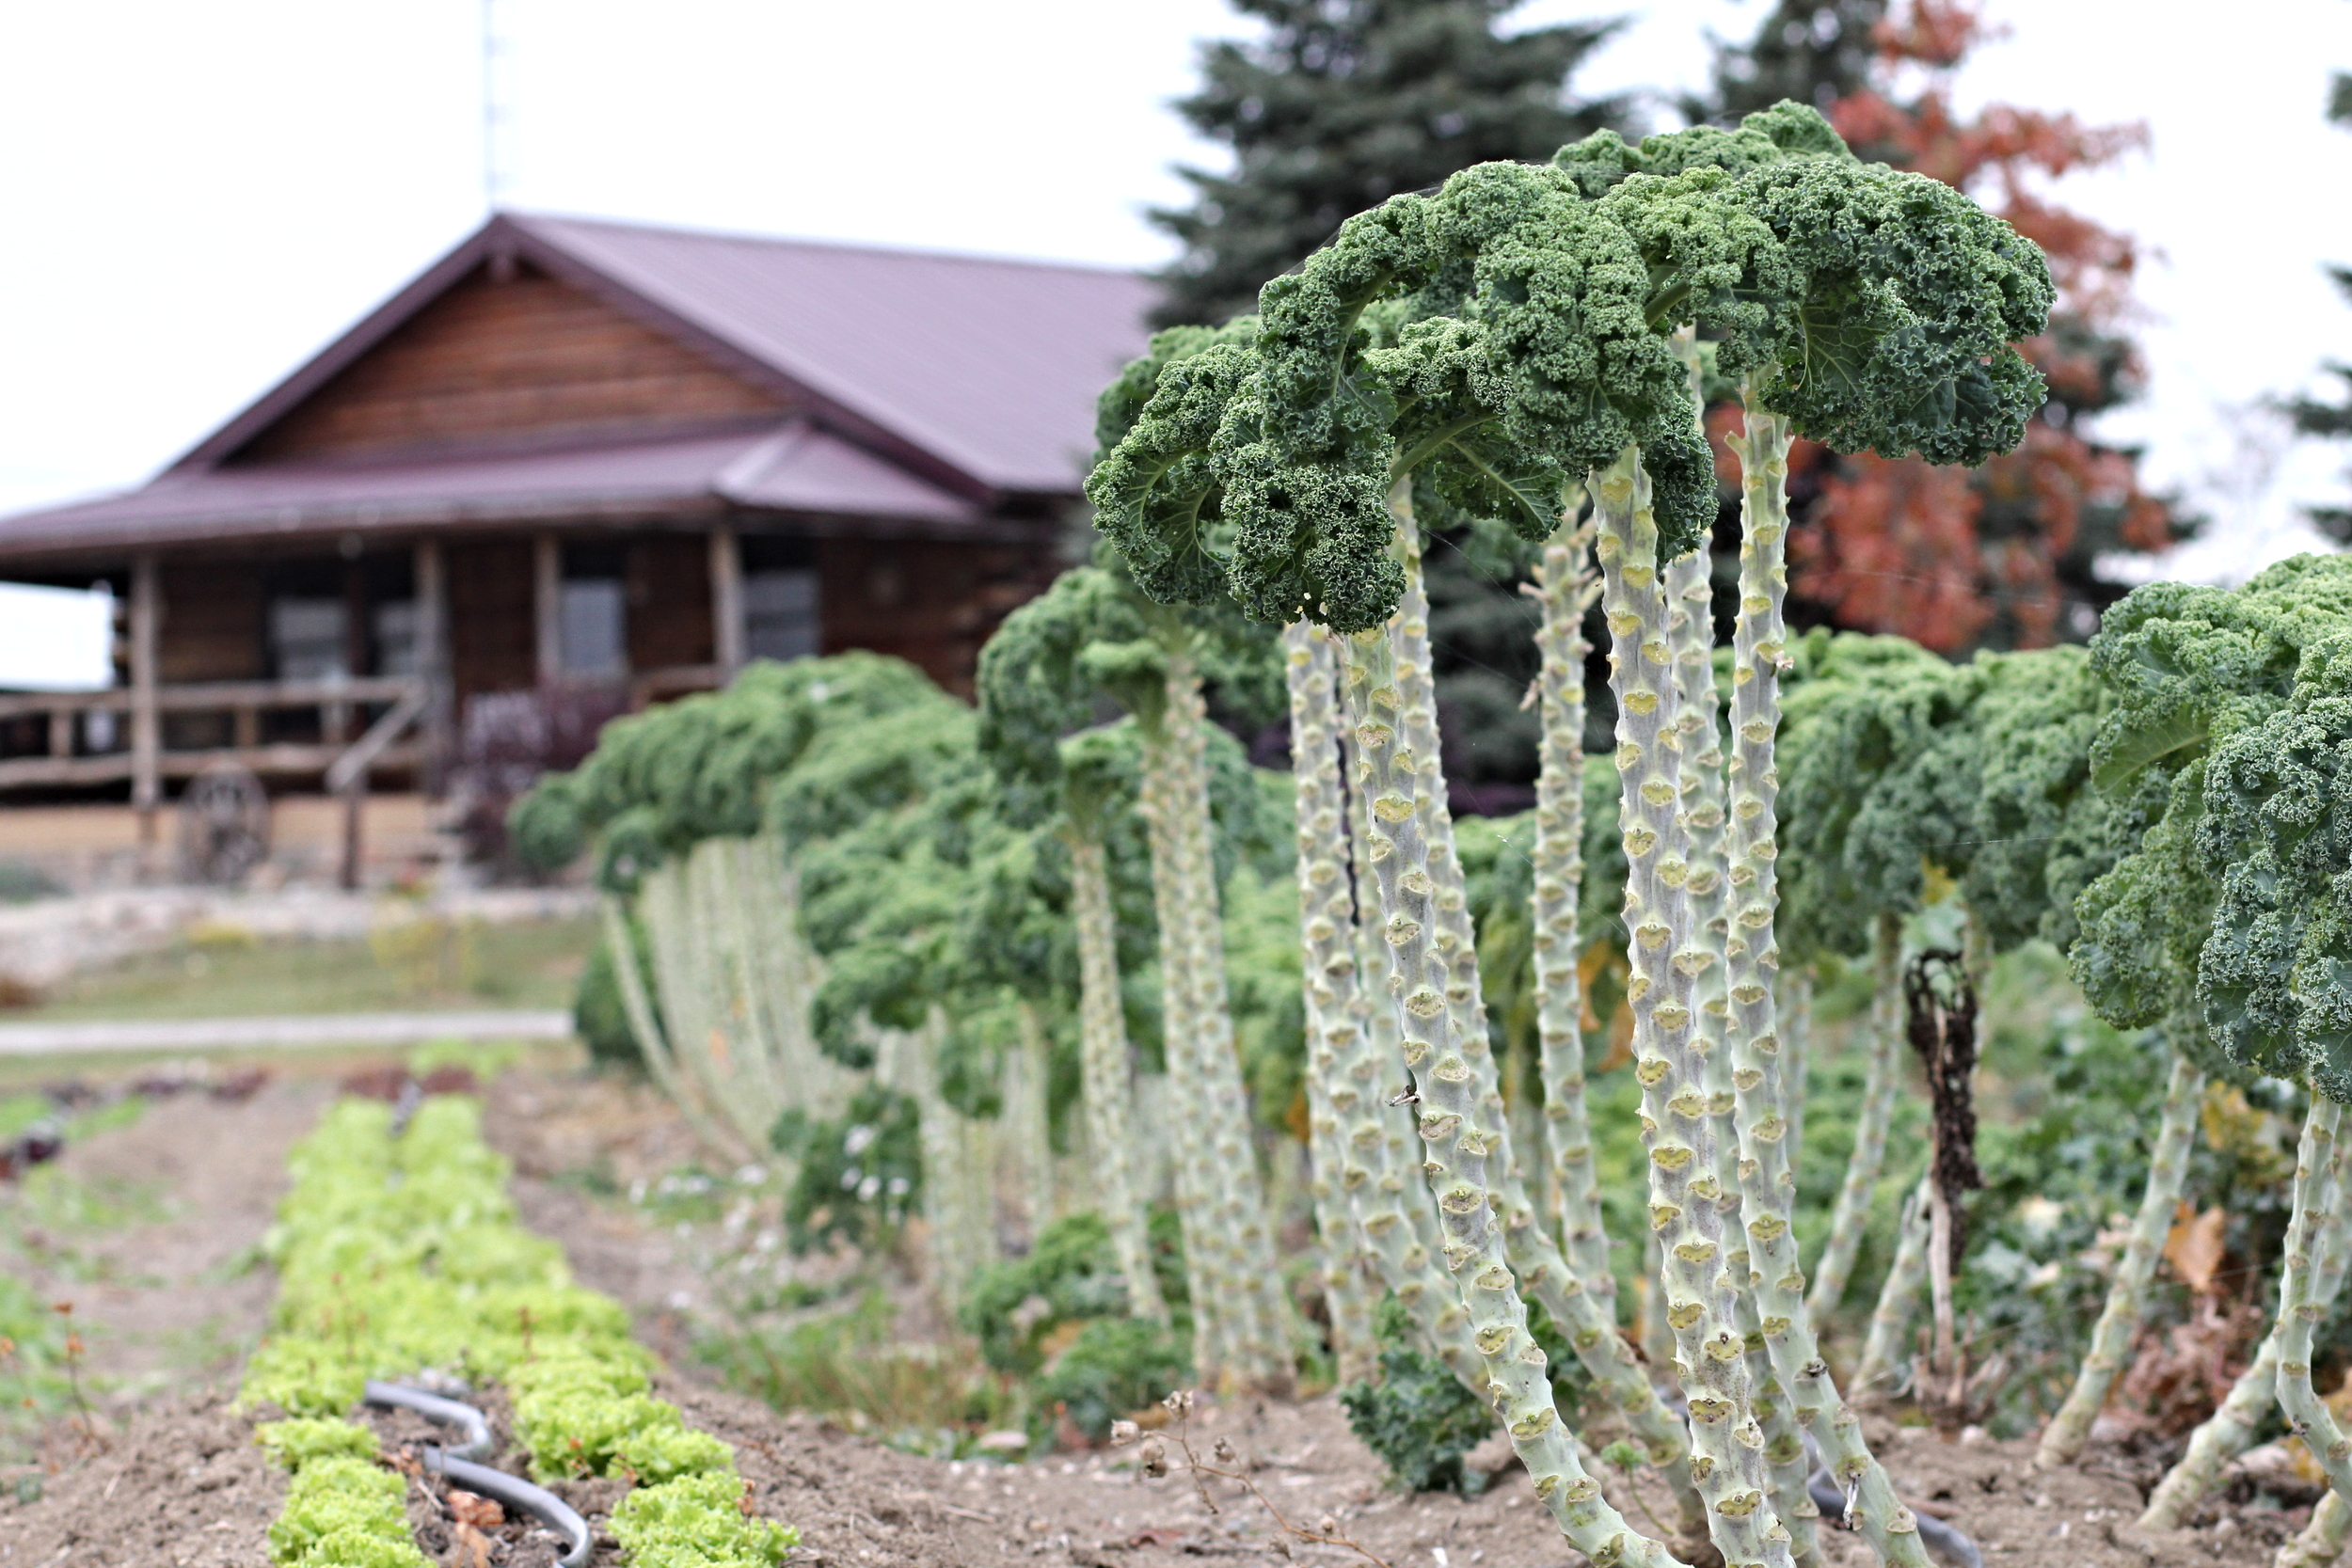 Towering kale (if you didn't know what it looks like planted)